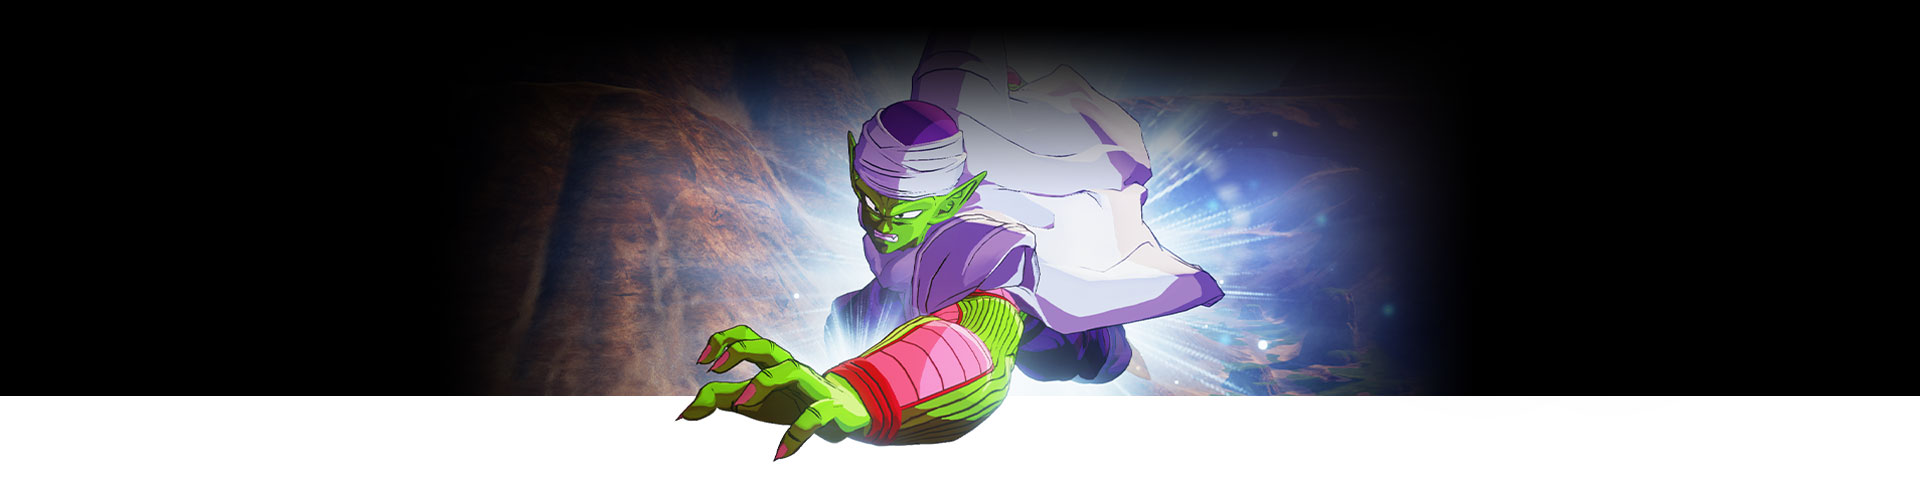 Piccolo flies forward with his hard outstretched